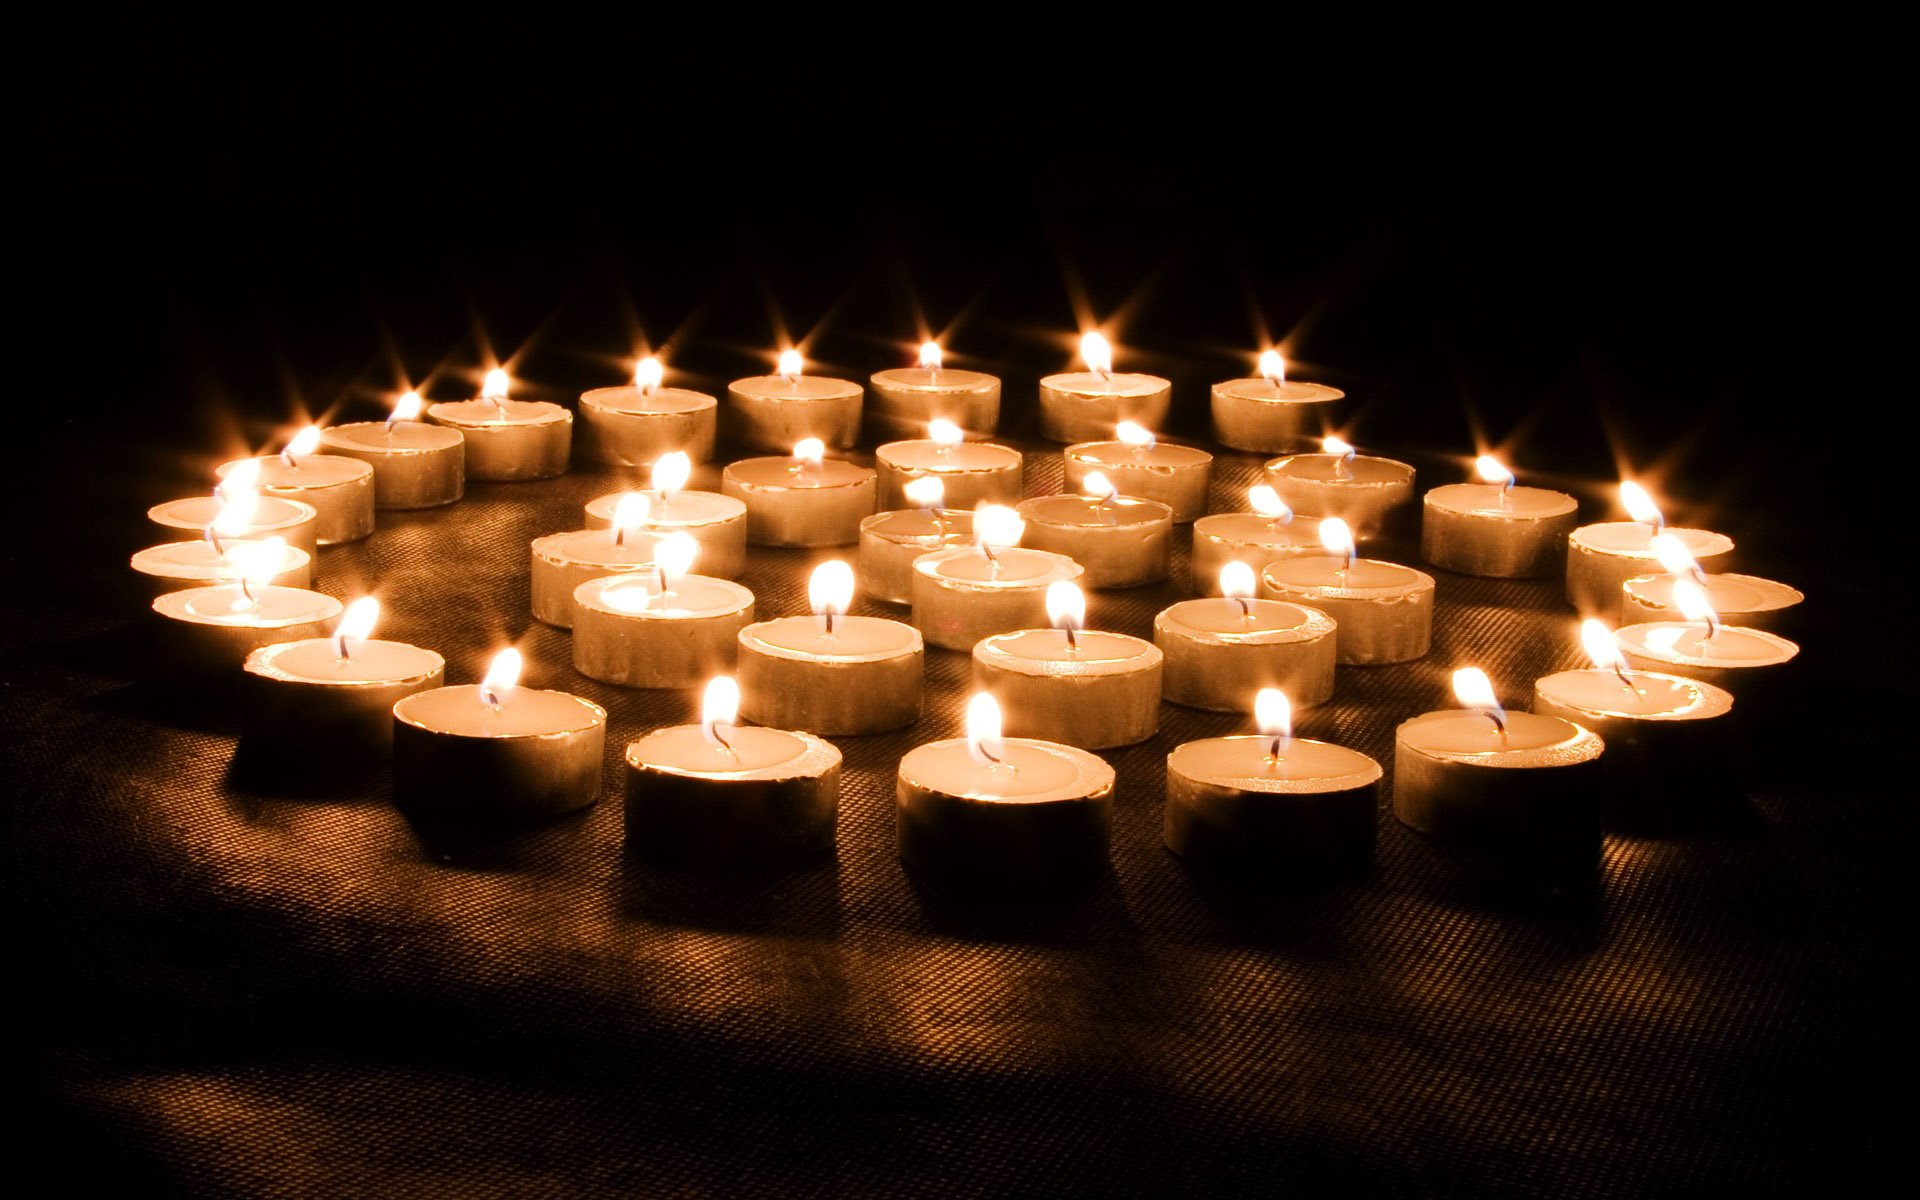 Candle wallpaper 3411